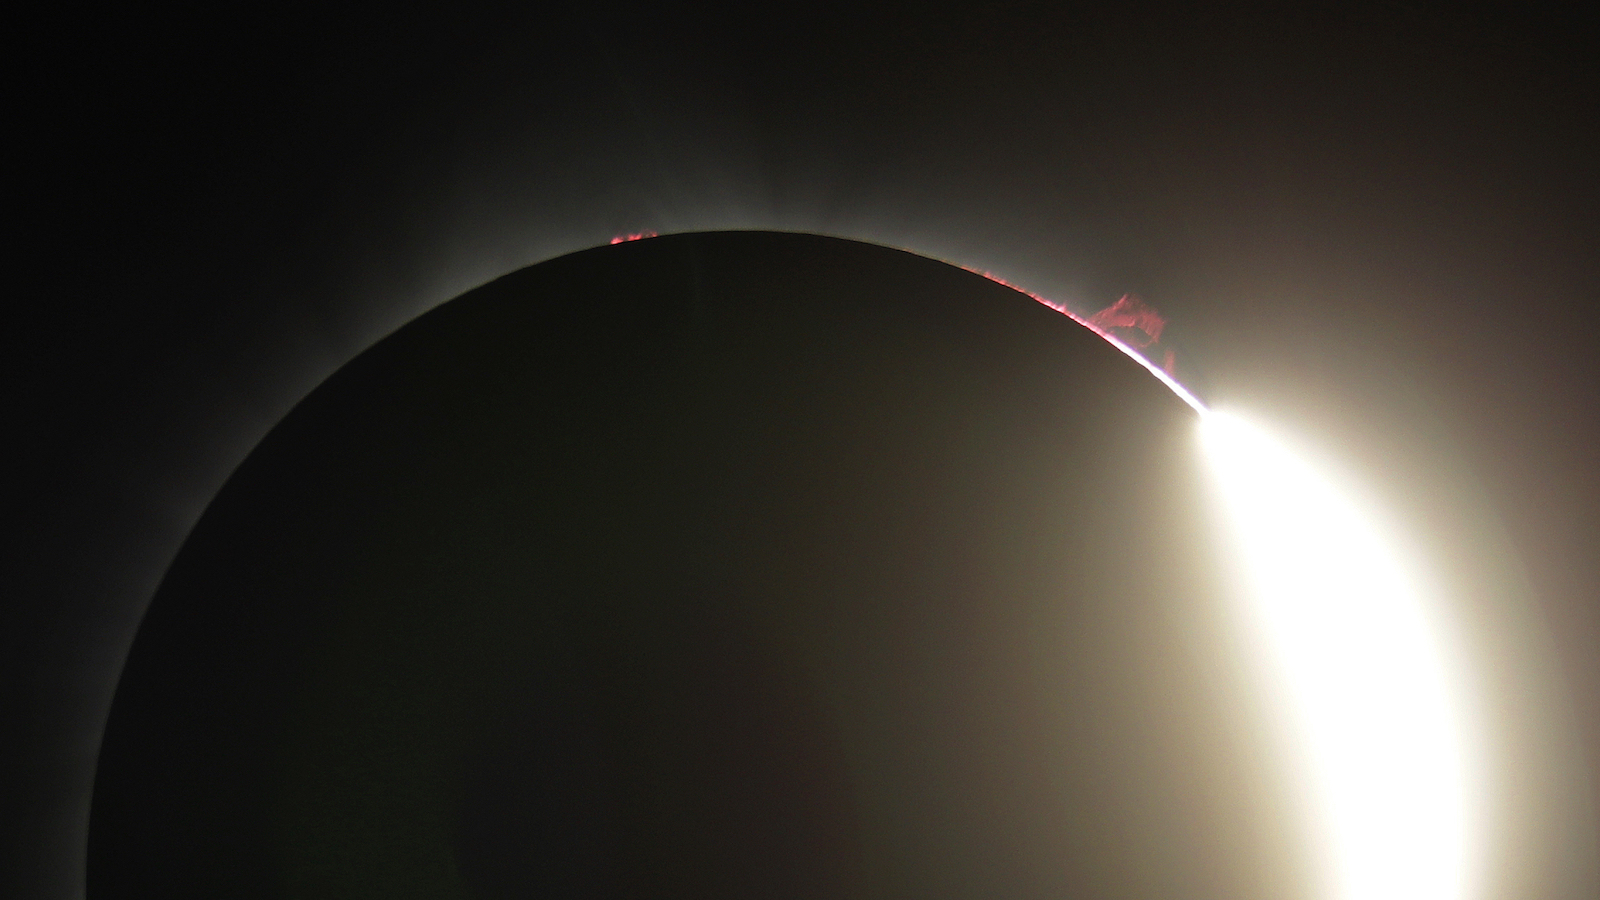 Solar activity can be seen as the sun emerges from a total eclipse by the moon, Monday, Aug. 21, 2017, near Redmond, Ore. (AP Photo/Ted S. Warren)